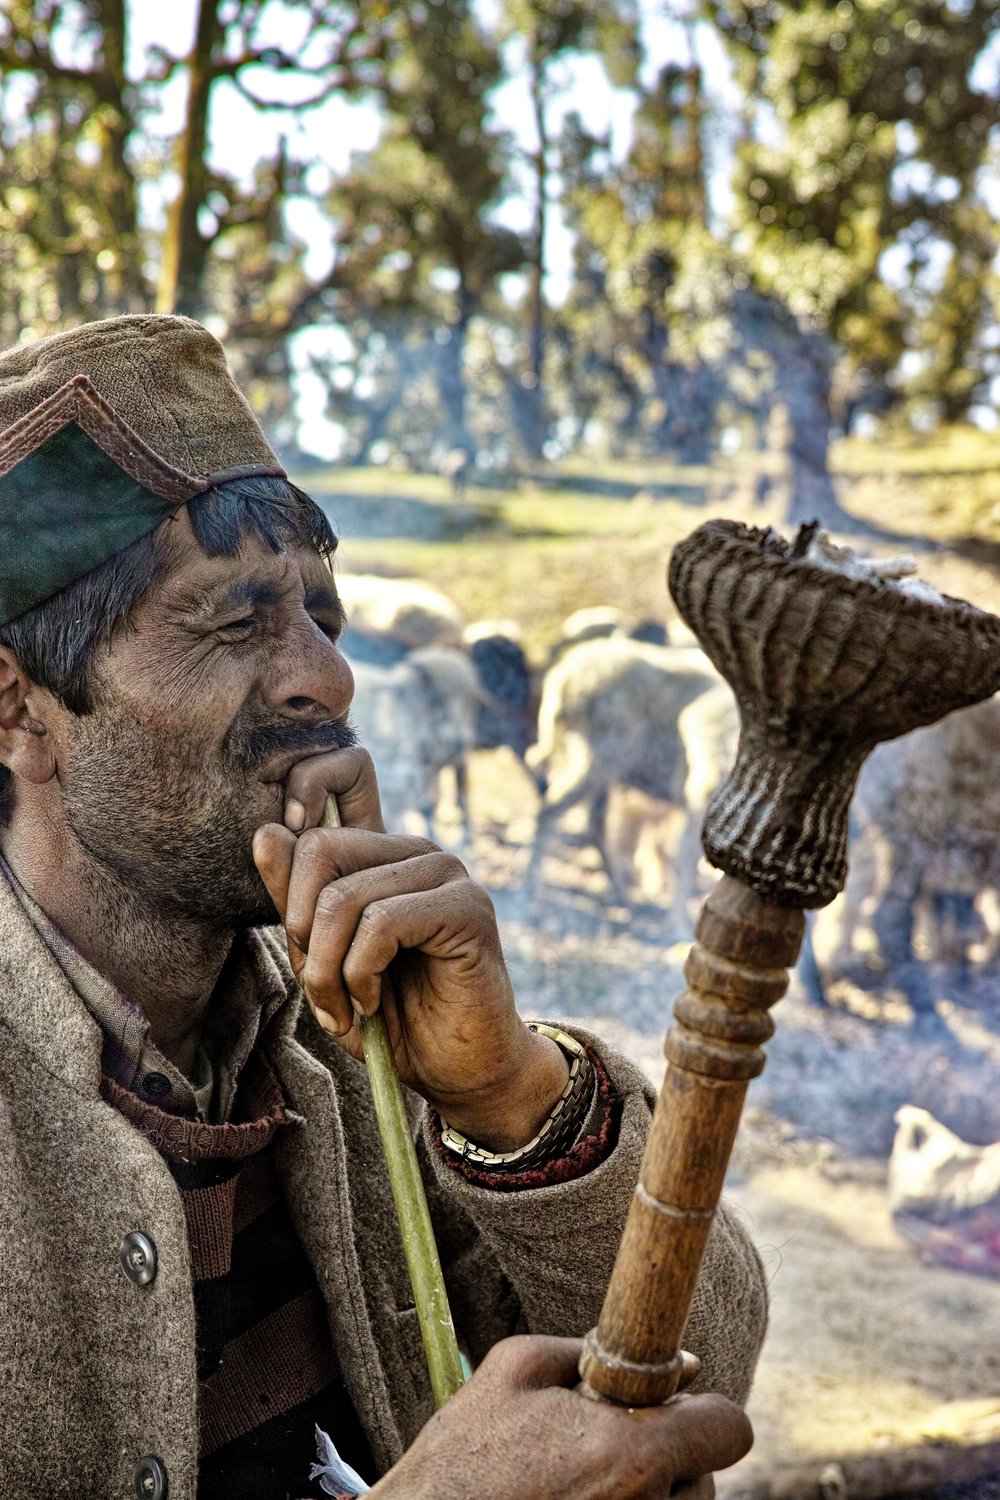 A Gaddis Smoking a Hookah - Nomadic shepherds in the Indian Himalayas.  Mainly living in the North Indian states of Himachal, Uttarakhand and Jammu & Kashmir. During their oscillatory migration, Gaddis carry some light utensils, maize flour, salt and some other basic essentials in a Khalru (sheep skin bag). This Khalru is often loaded like a backpack by a Gaddi. In addition to the Khalru, he always carries his Hookah and tobacco in a leather pouch. Very often, a Gaddi will carry a new born lamb in his Chola (wooden coat). Since they do not carry tents, Gaddis prefer sleeping in the open. When the weather turns inclement, they seek shelter under natural rock projections or trees and use their blankets made from goat hair. Rough but extremely warm. Gaddis are extremely fond of their dogs and these dogs are very territorial and are on herd guard duty at night.